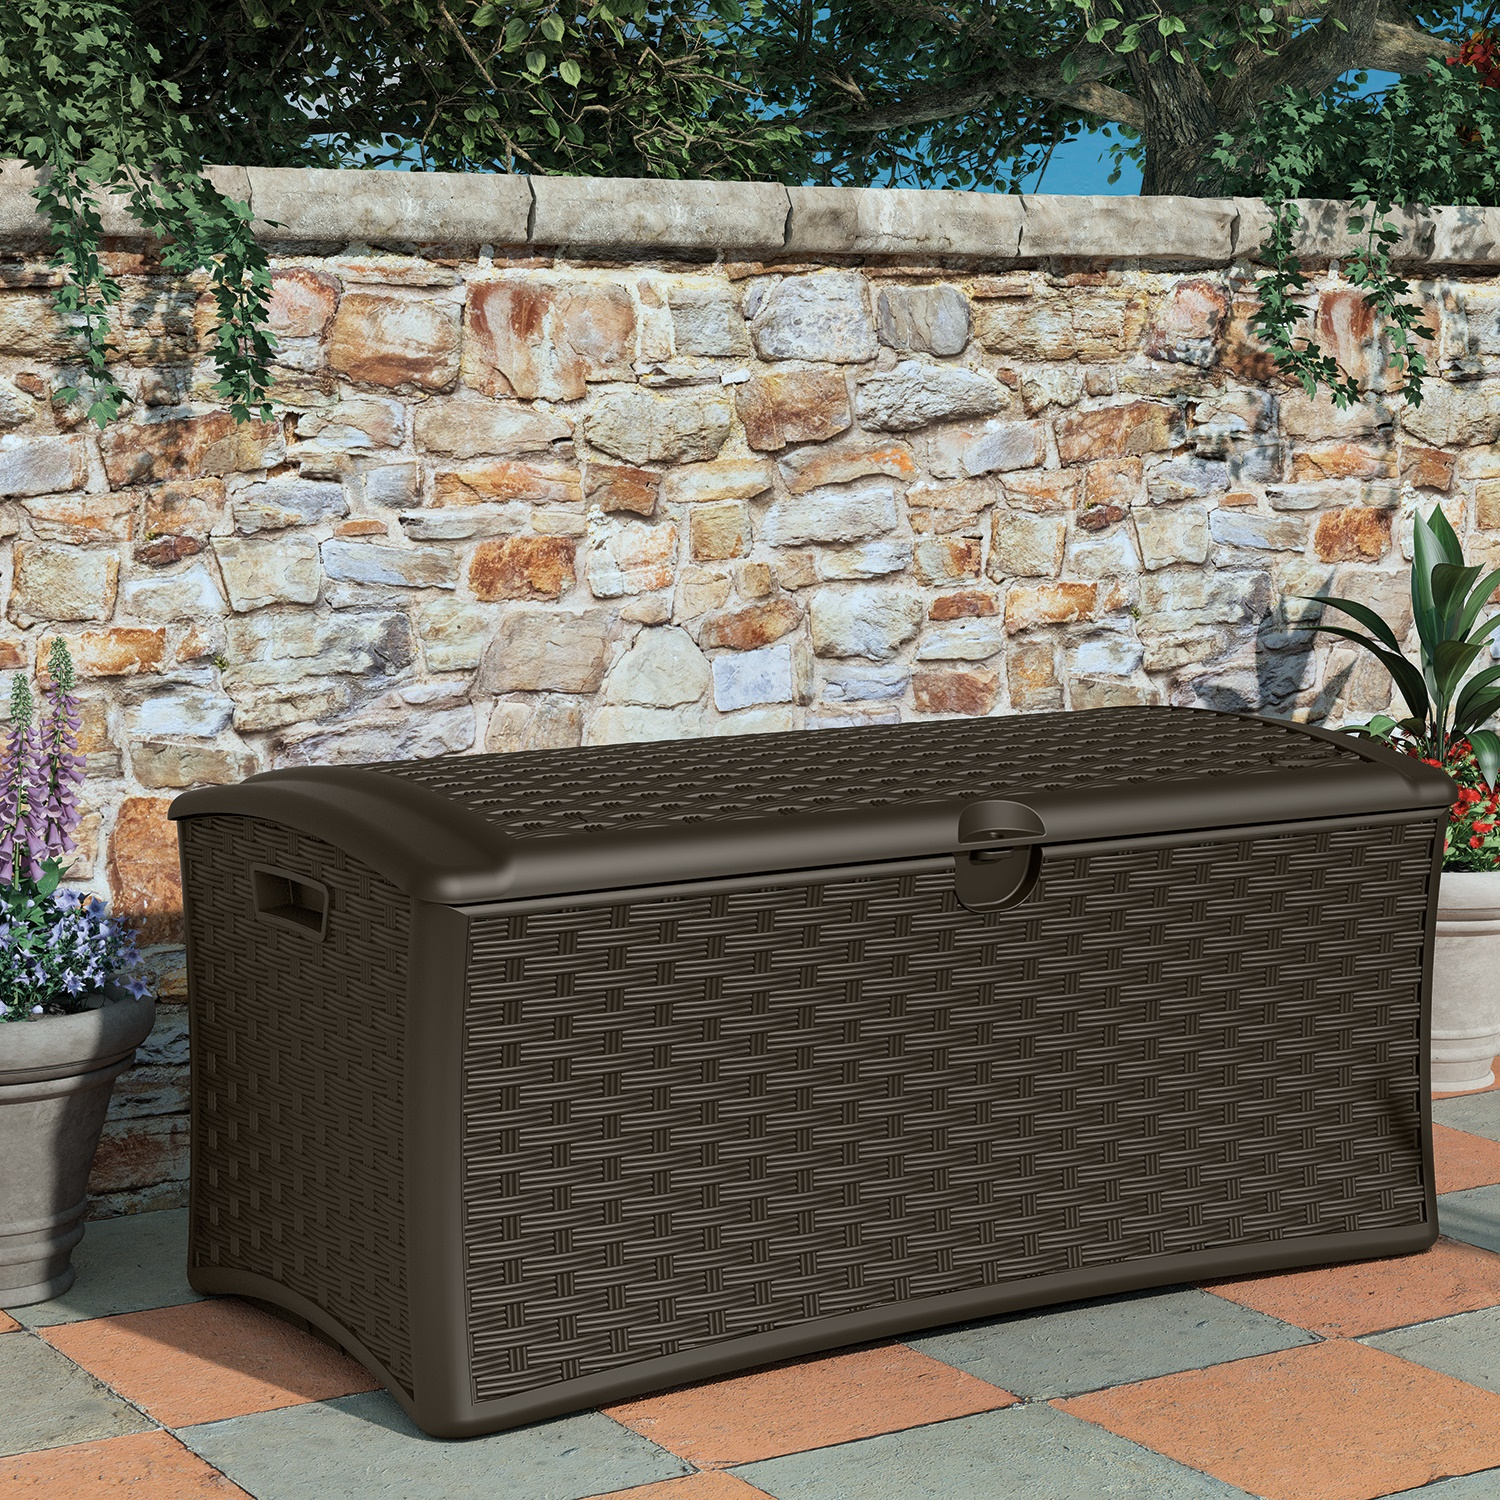 Image of BillyOh Suncast 265 litre Deck Box Plastic Storage Bench